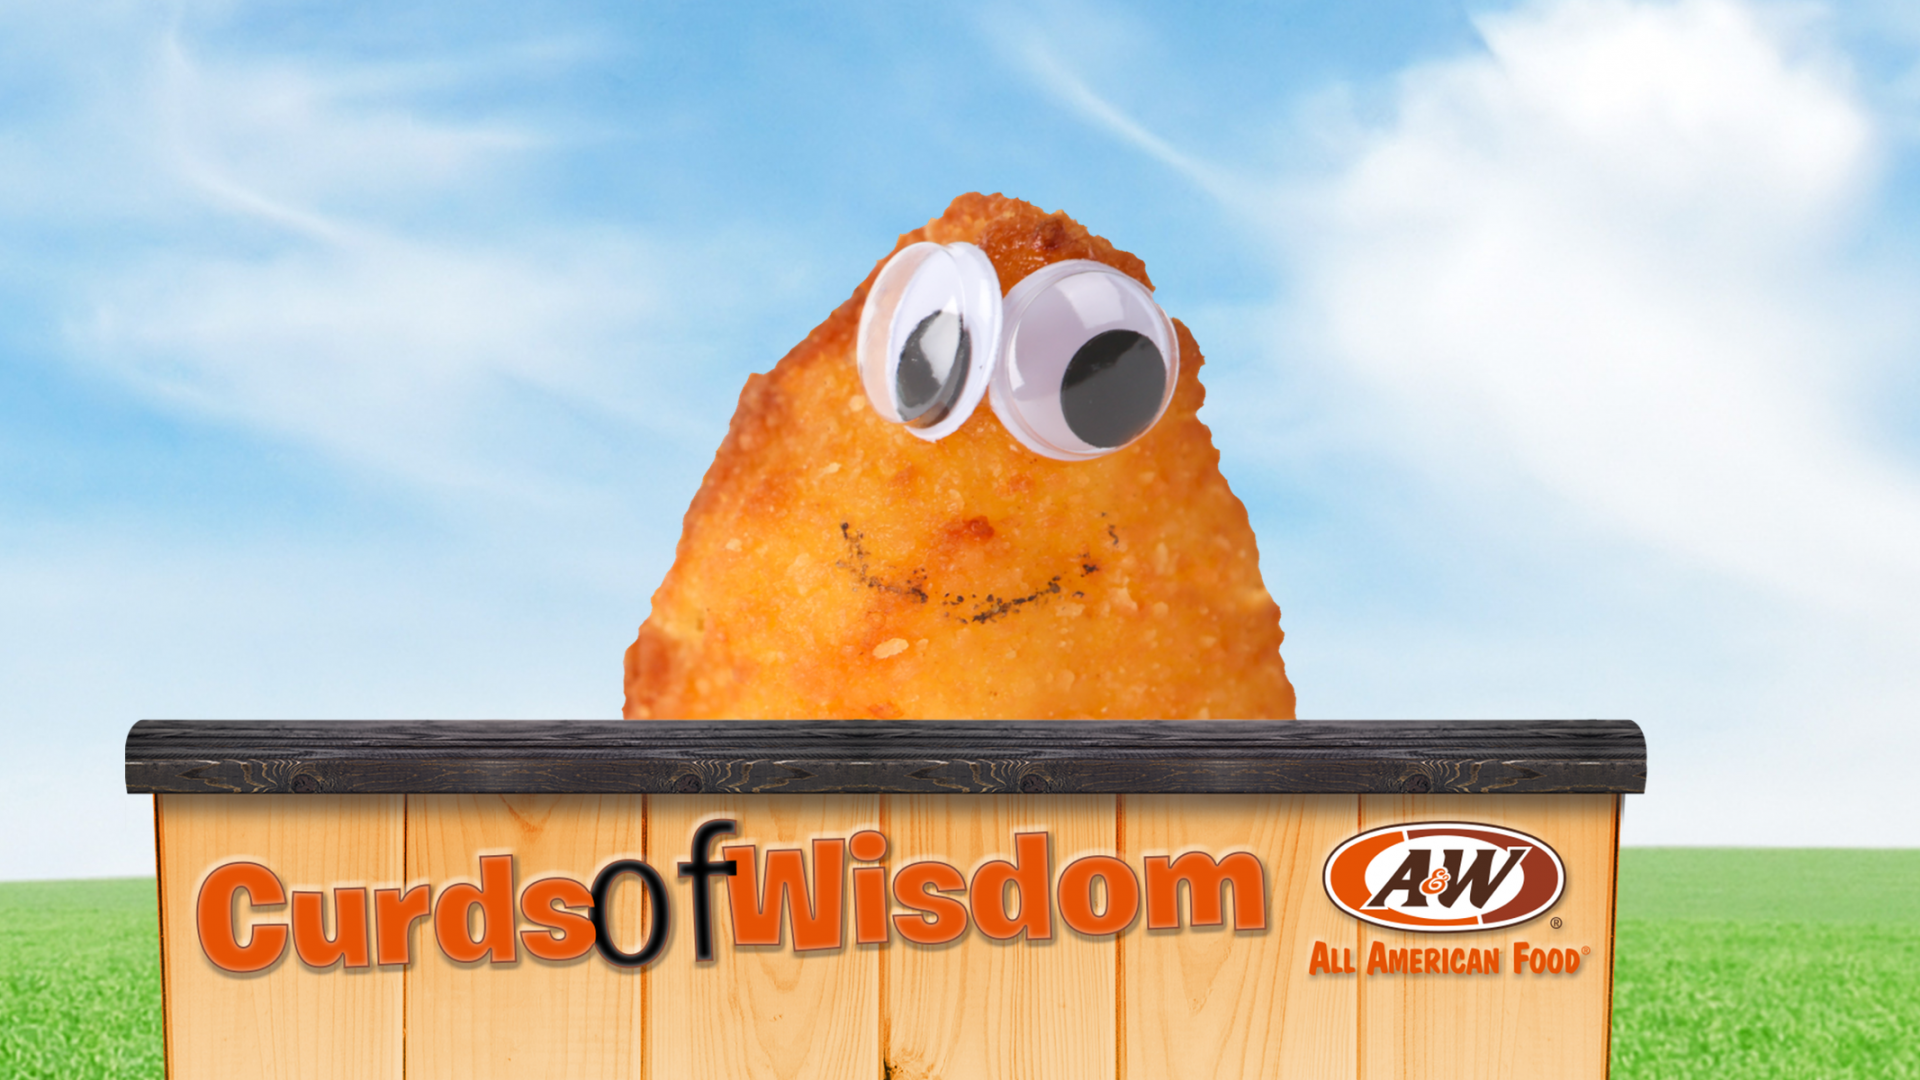 Cheese Curd of Wisdom